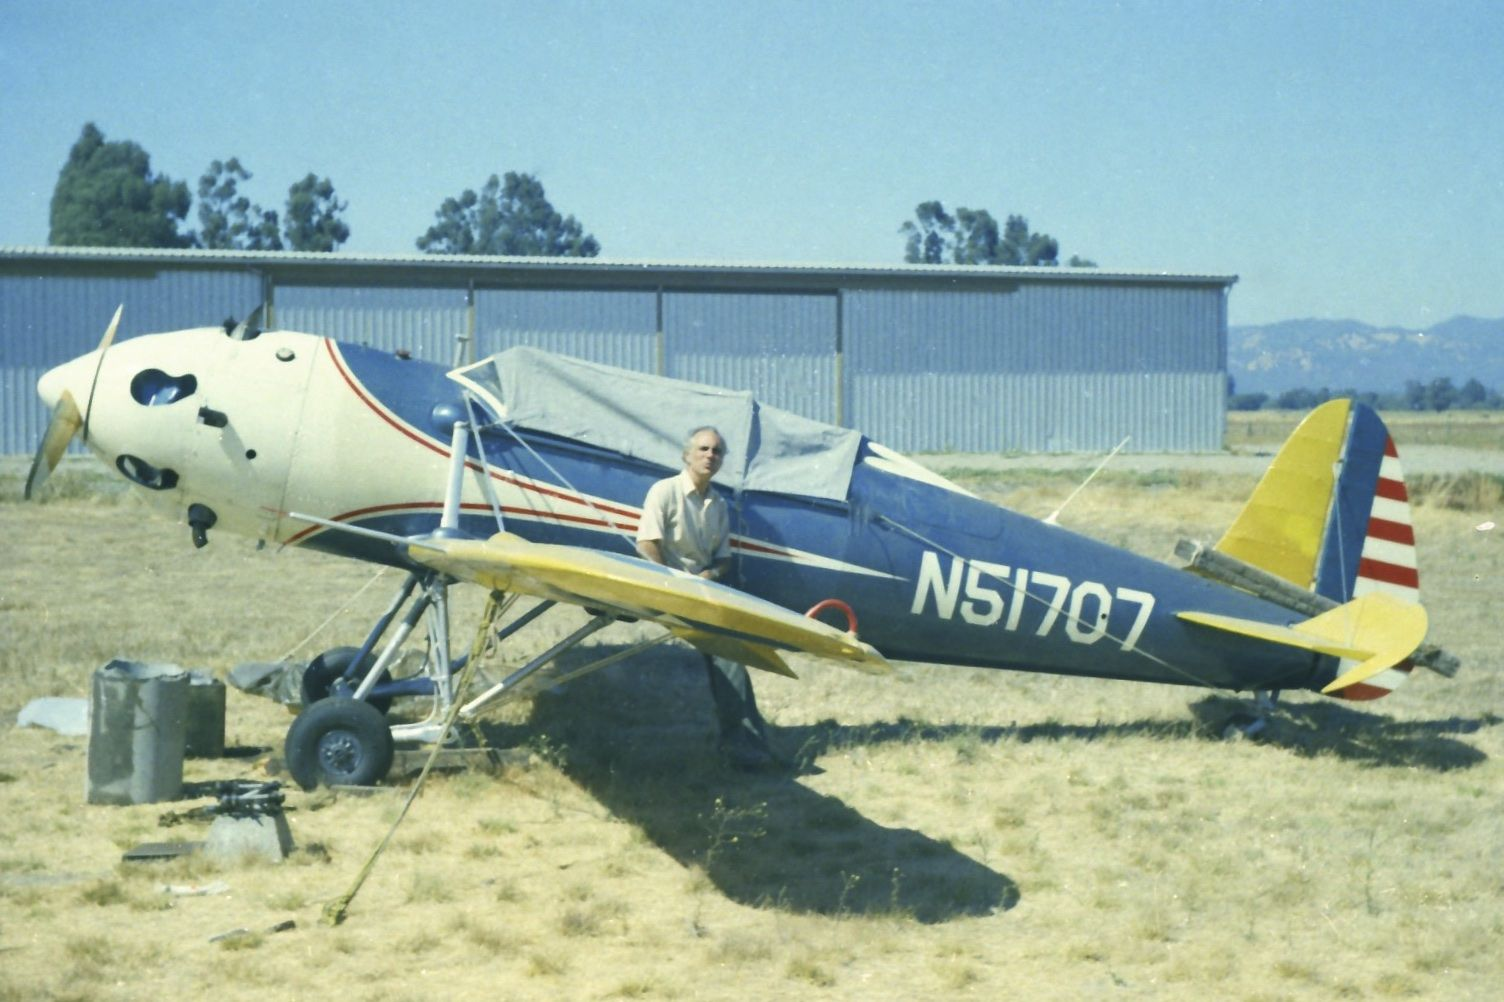 1942 Ryan PT22 ST3KR N51707. Paso Robles Airport in